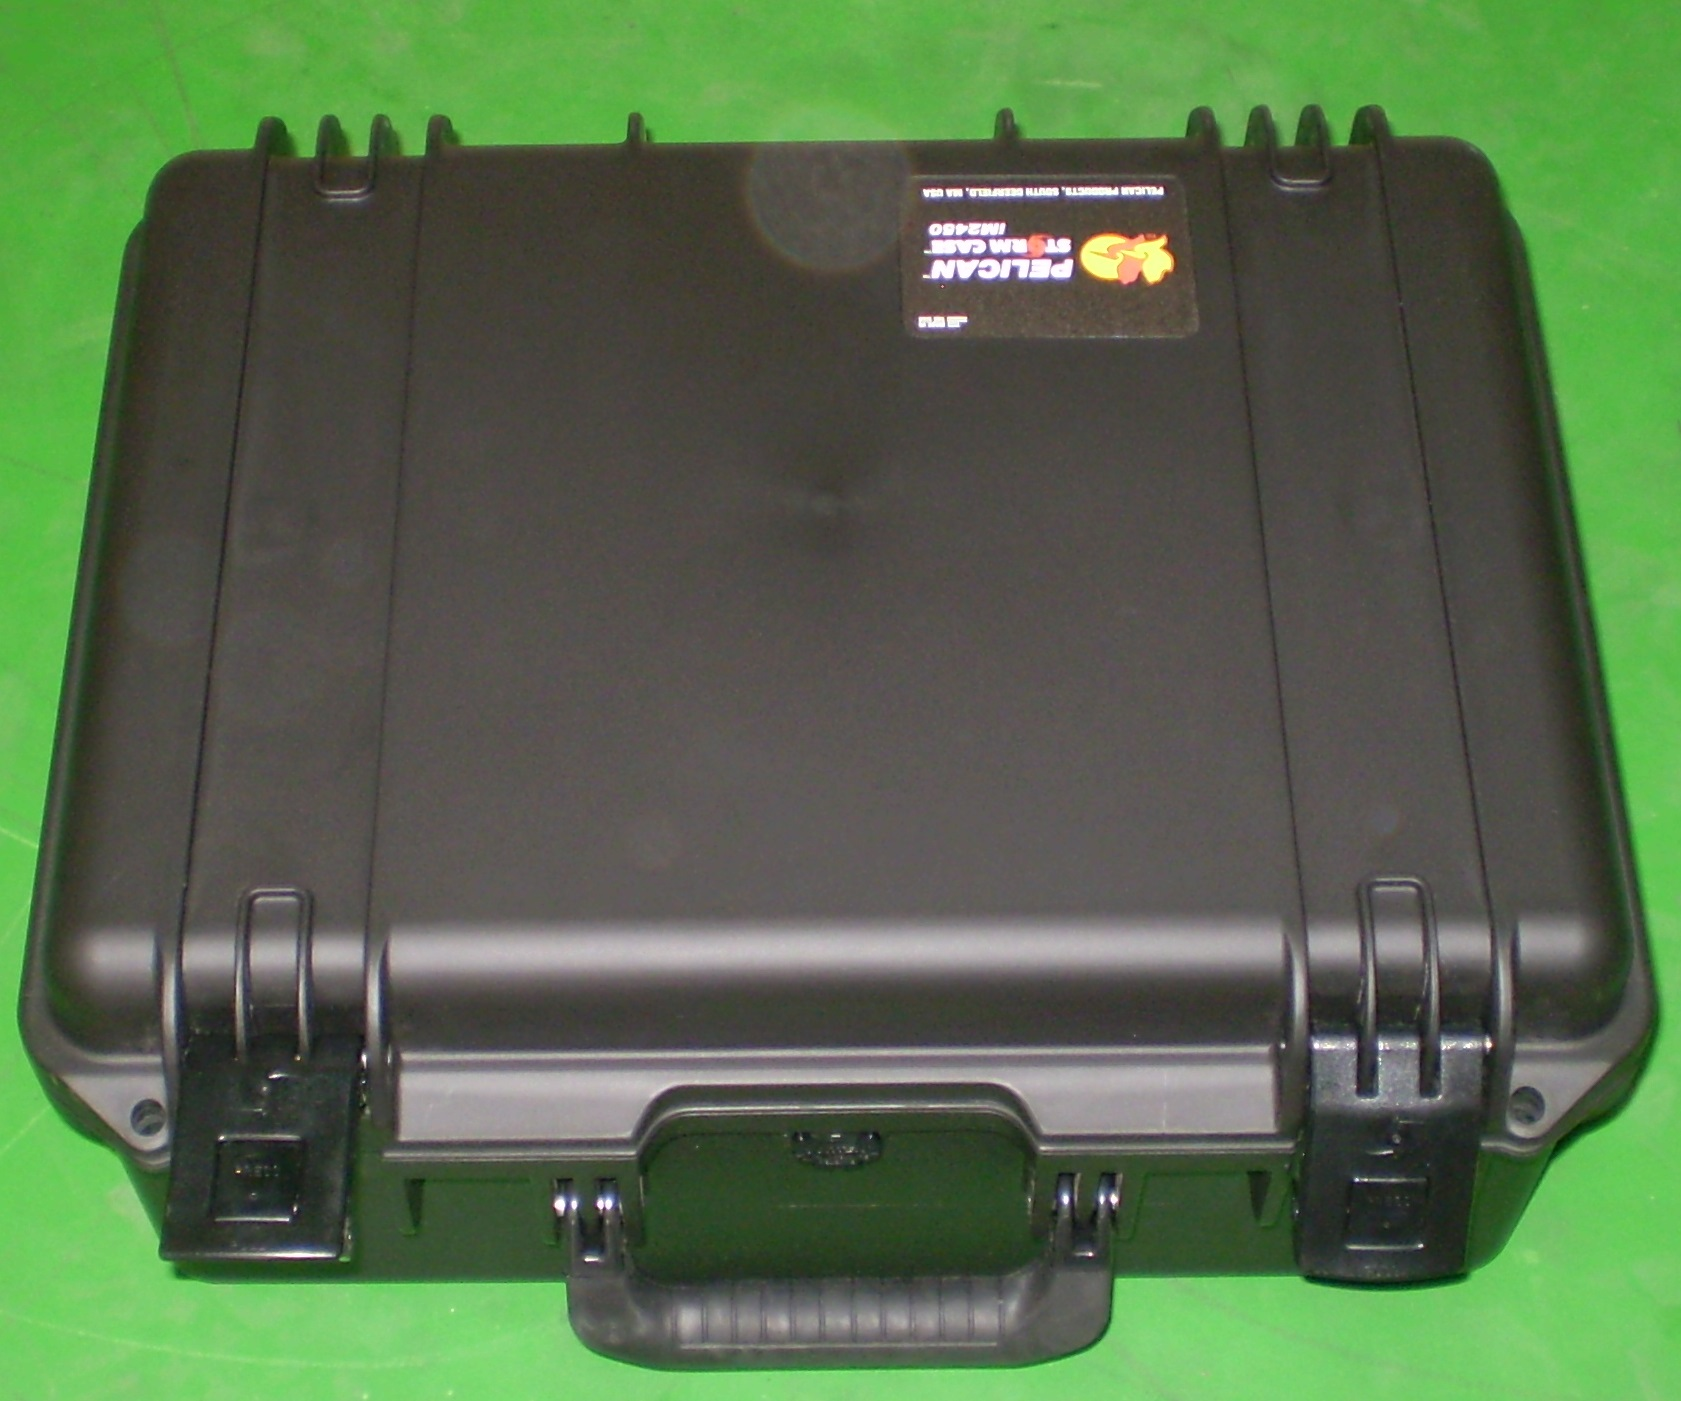 Print # 5950 - Retrofit iM2450 Storm Case for Lenovo Thinkpad Tablet 2 Kit By Nelson Case Corp